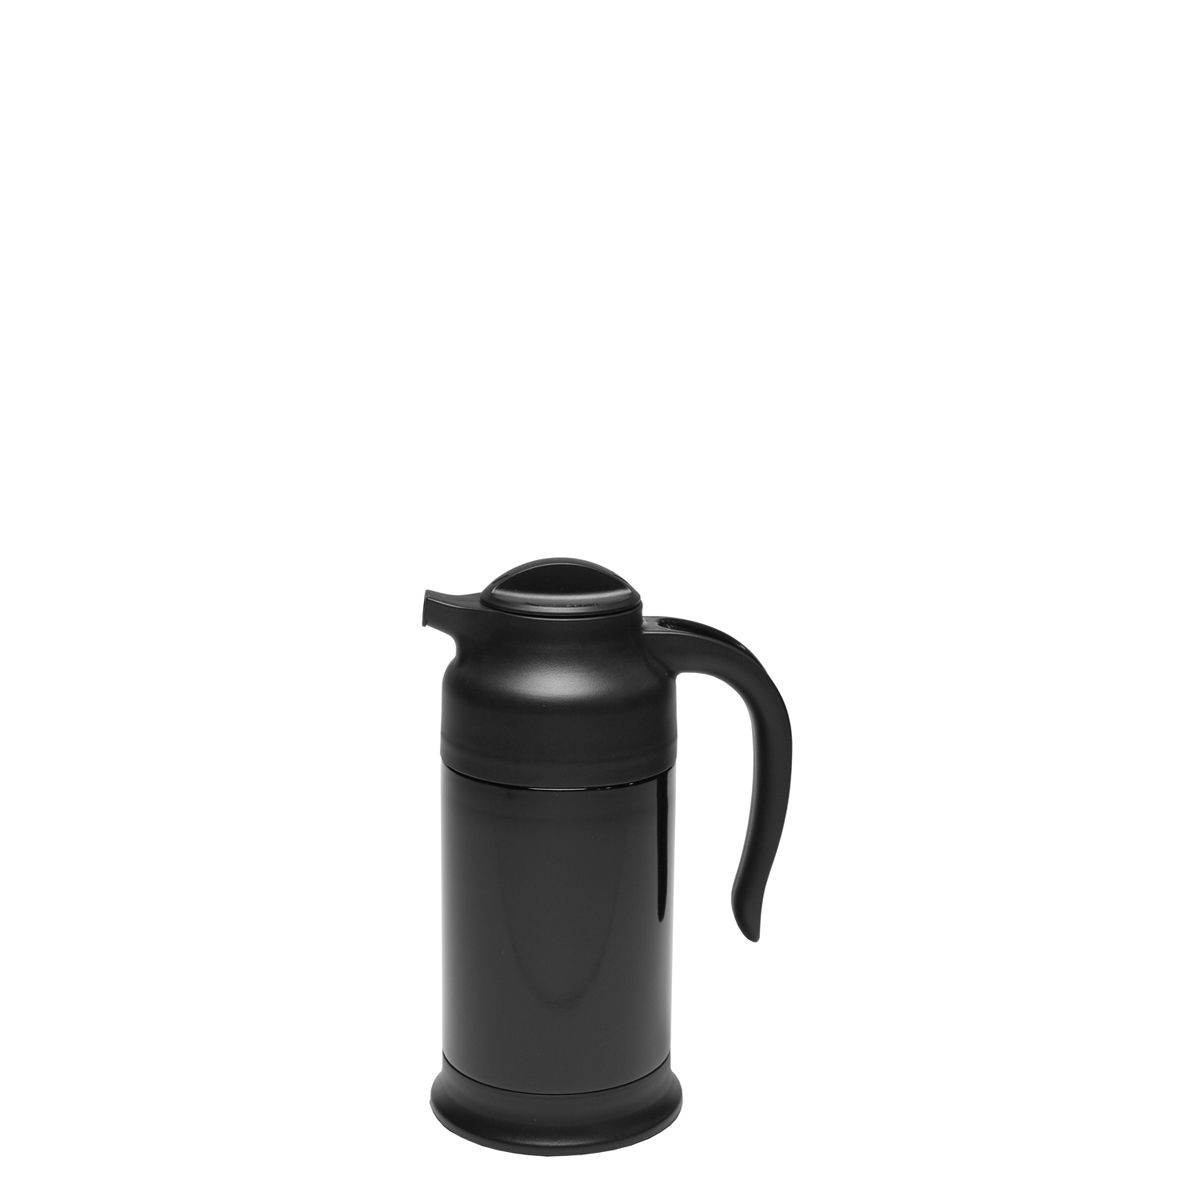 Service Ideas FS7BL Steelvac Black Carafe with Base 0.7 Liter